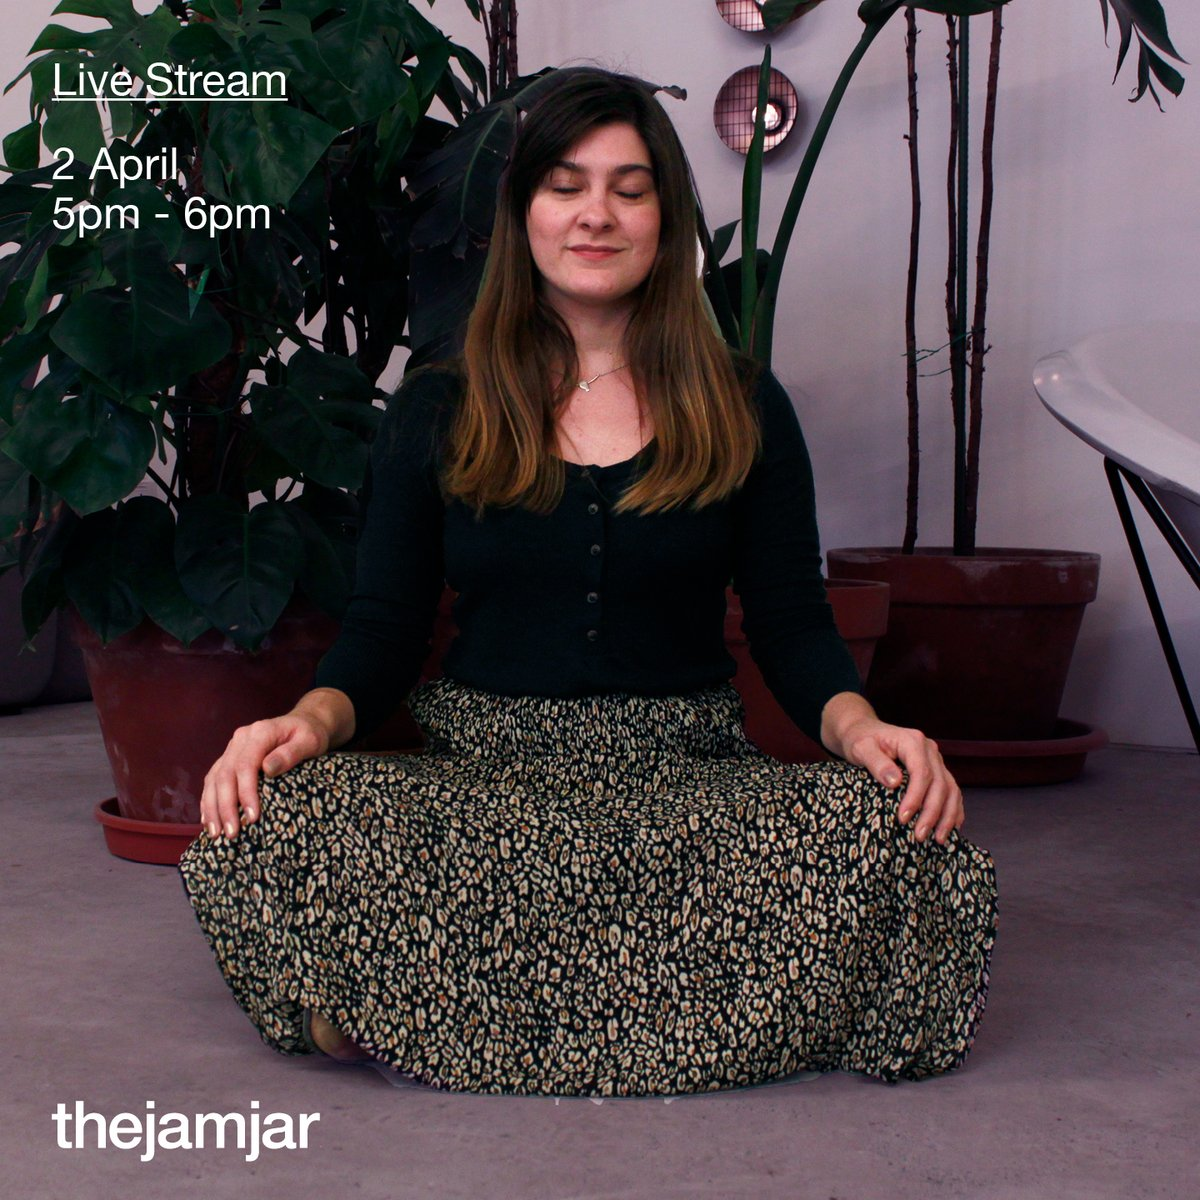 Tune into our live meditation conducted by certified thetahealer, Victoria Parrucci! Using the ThetaHealing® technique, you will learn to let go of the negativity. All ages are welcome! . To learn more about ThetaHealing®: http://www.thetahealing.com/ . #thejamjardubai  #dubai #uaepic.twitter.com/m8xgX0sAFb